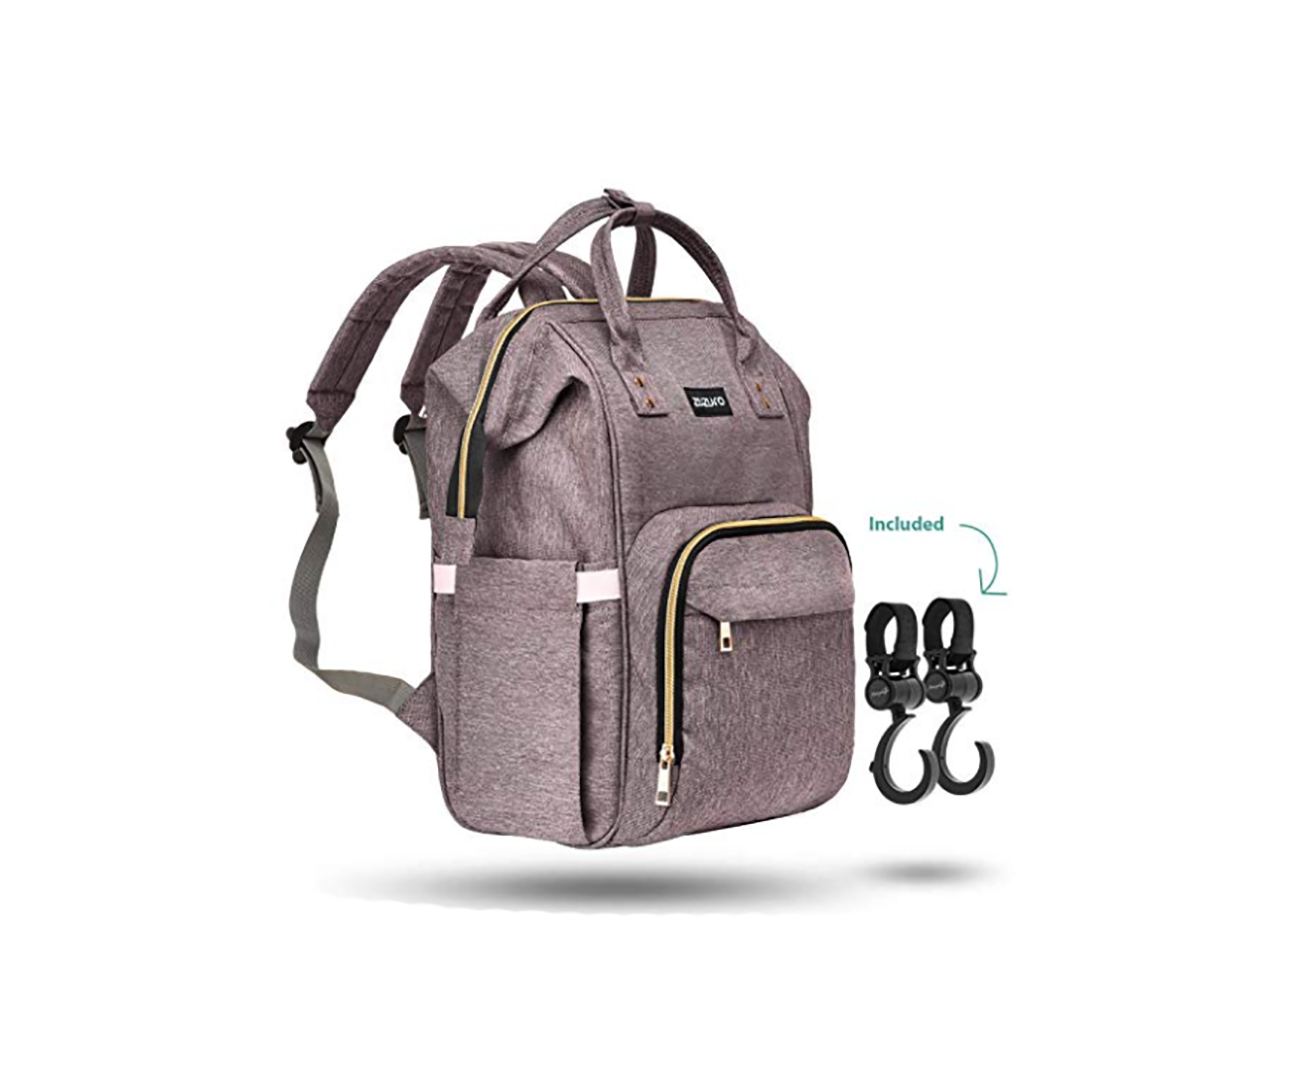 Zuzuro Backpack Diaper Bag